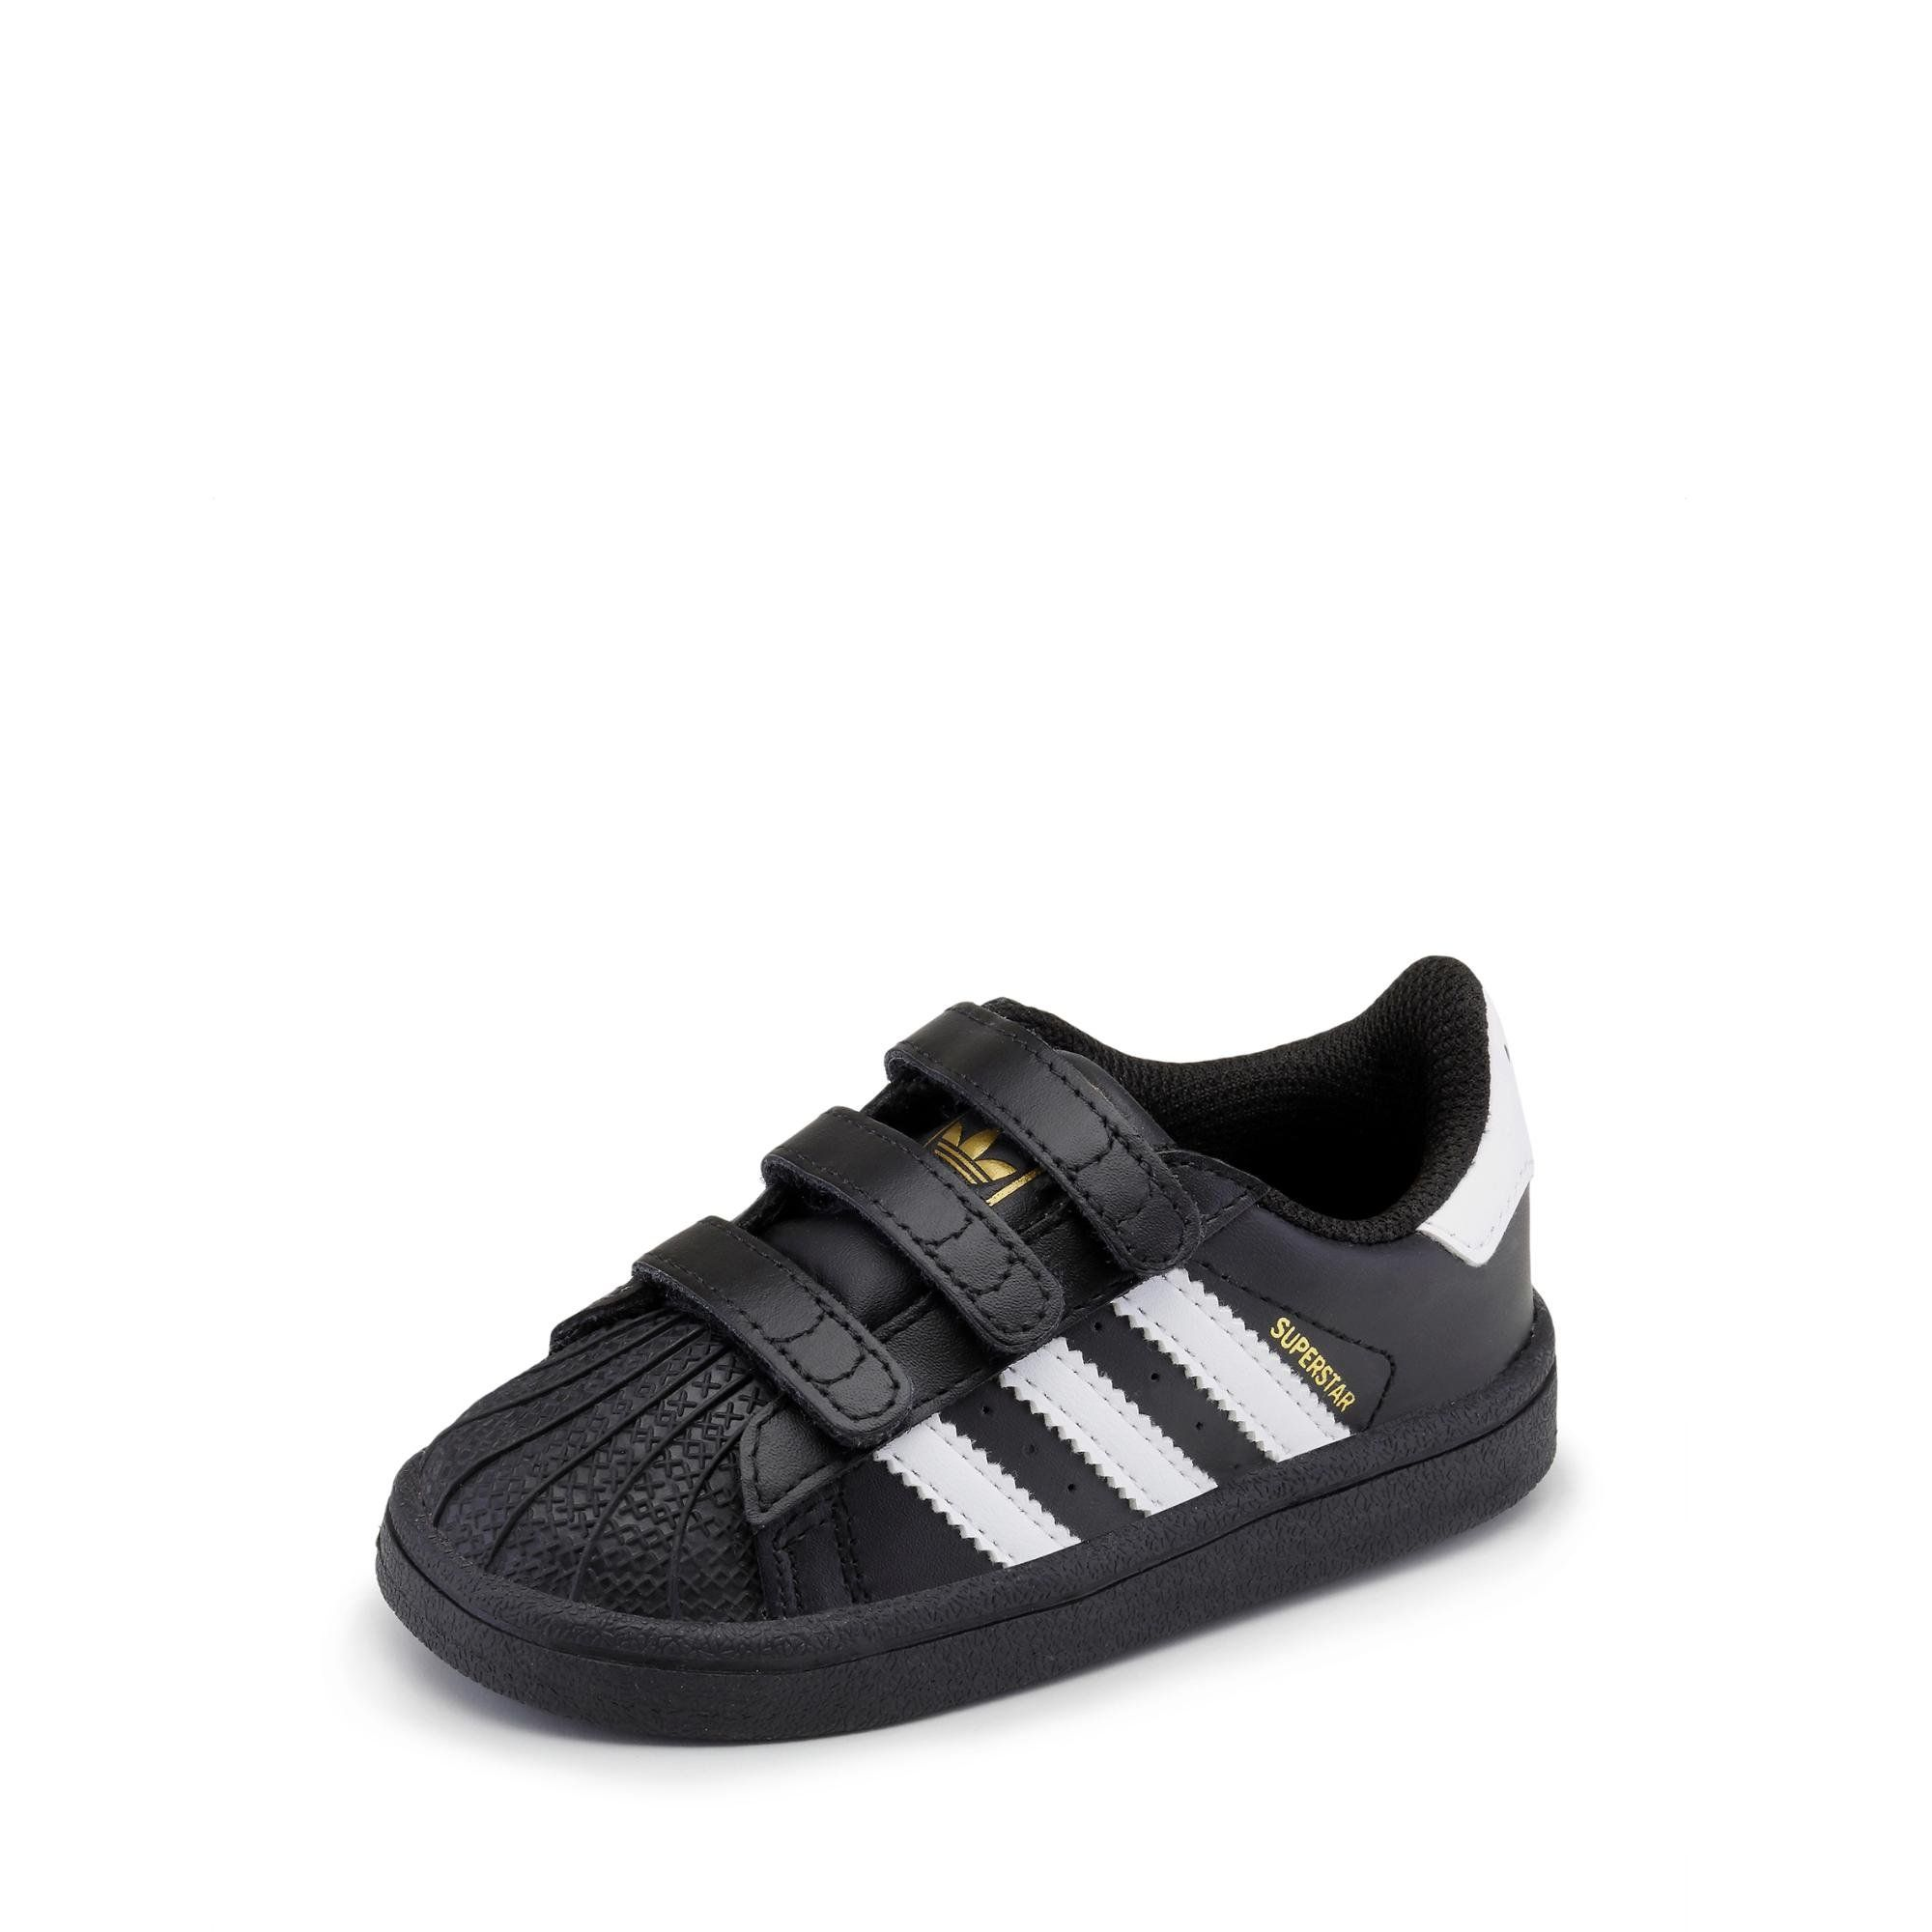 Calzado de niño Zapatillas adidas – Superstar Fundation Cf I